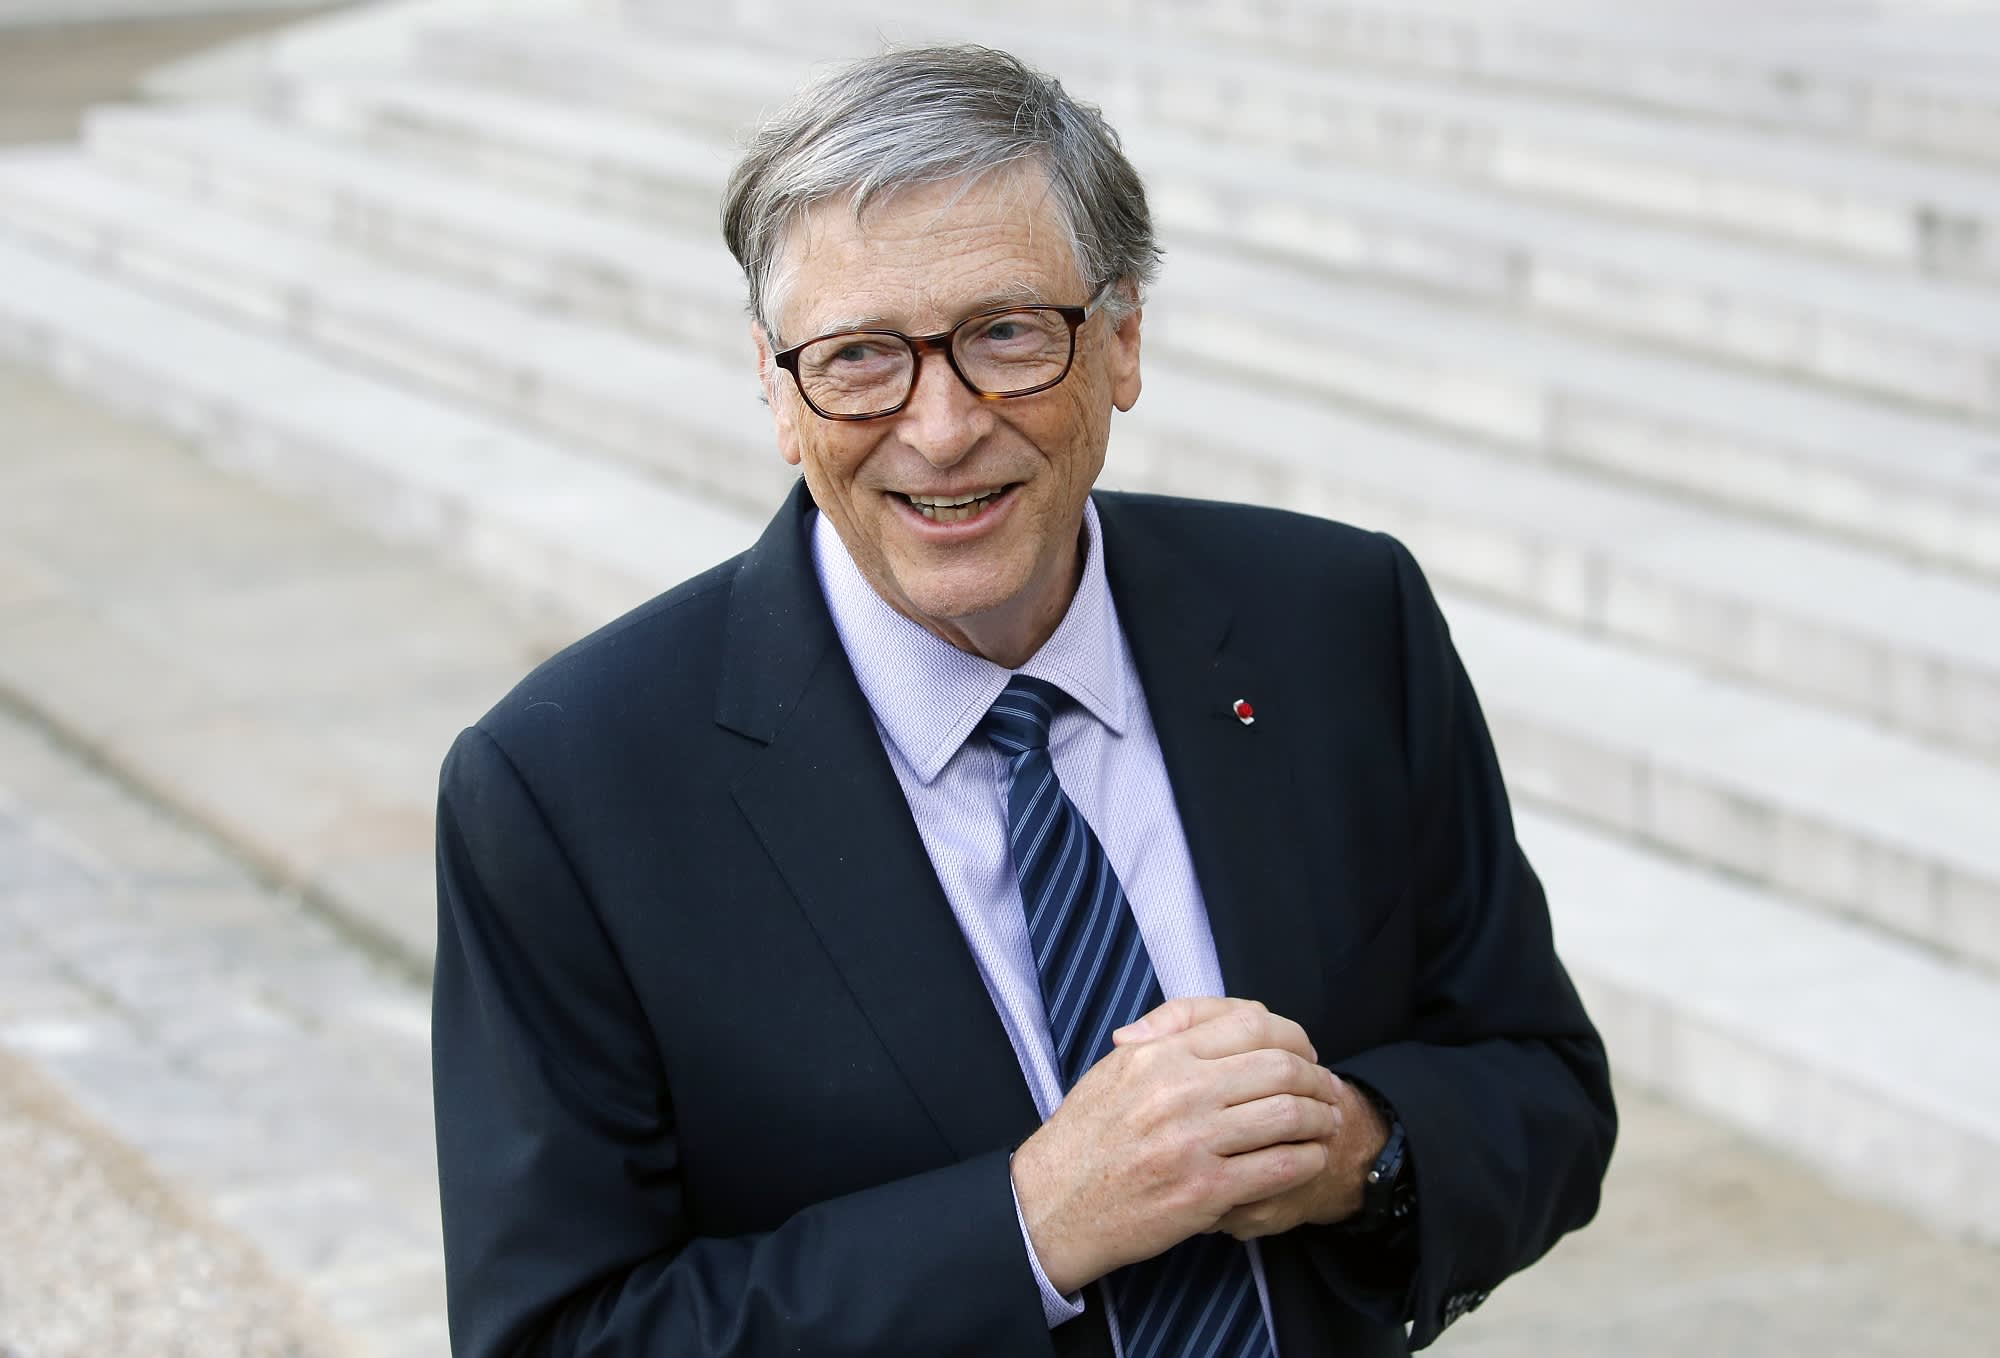 Bill Gates says he retired from Microsoft nearly a decade earlier than he intended—here's why